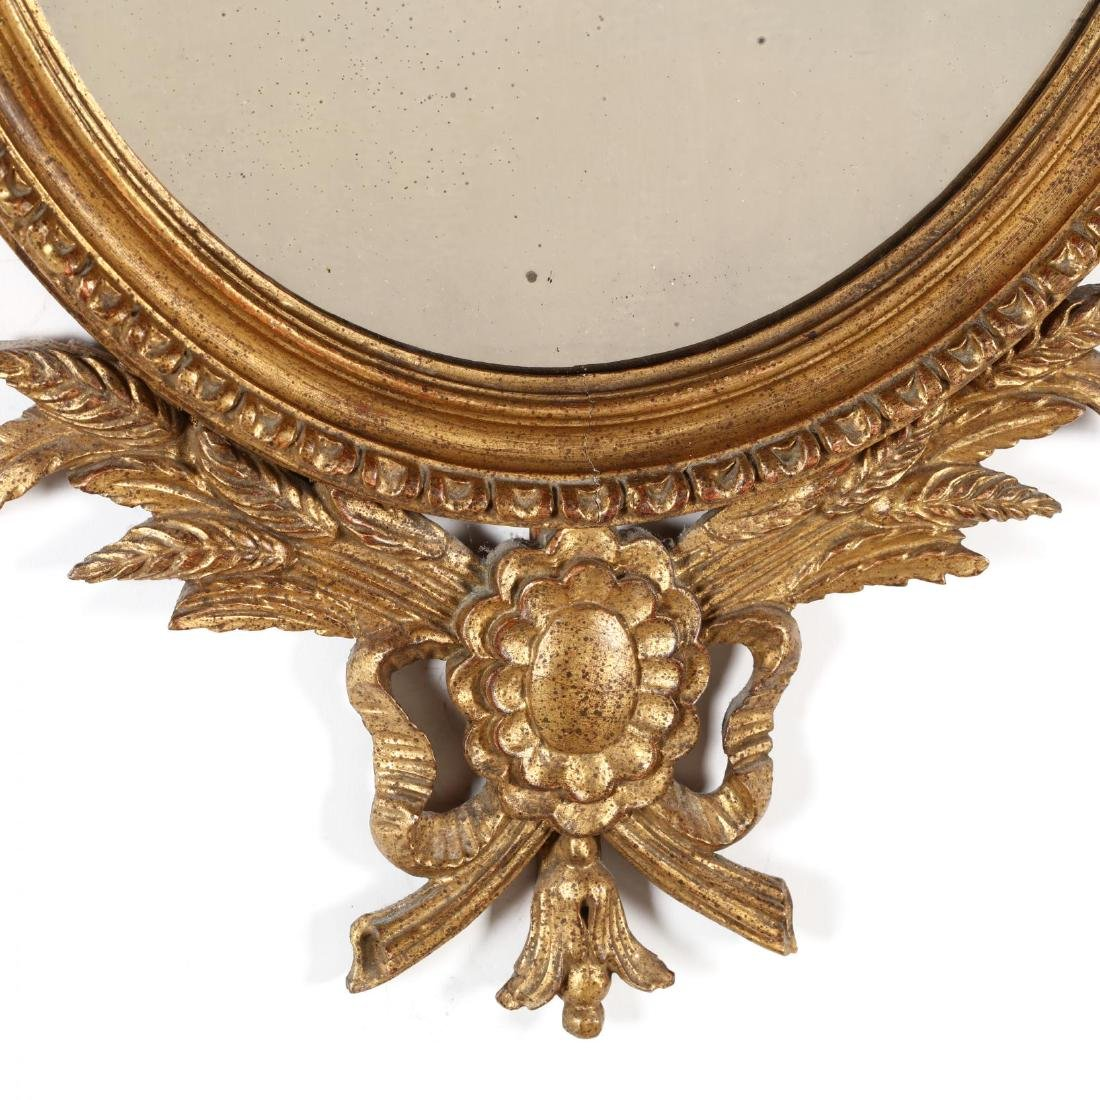 Vintage Italian Carved and Gilt Looking Glass - 3